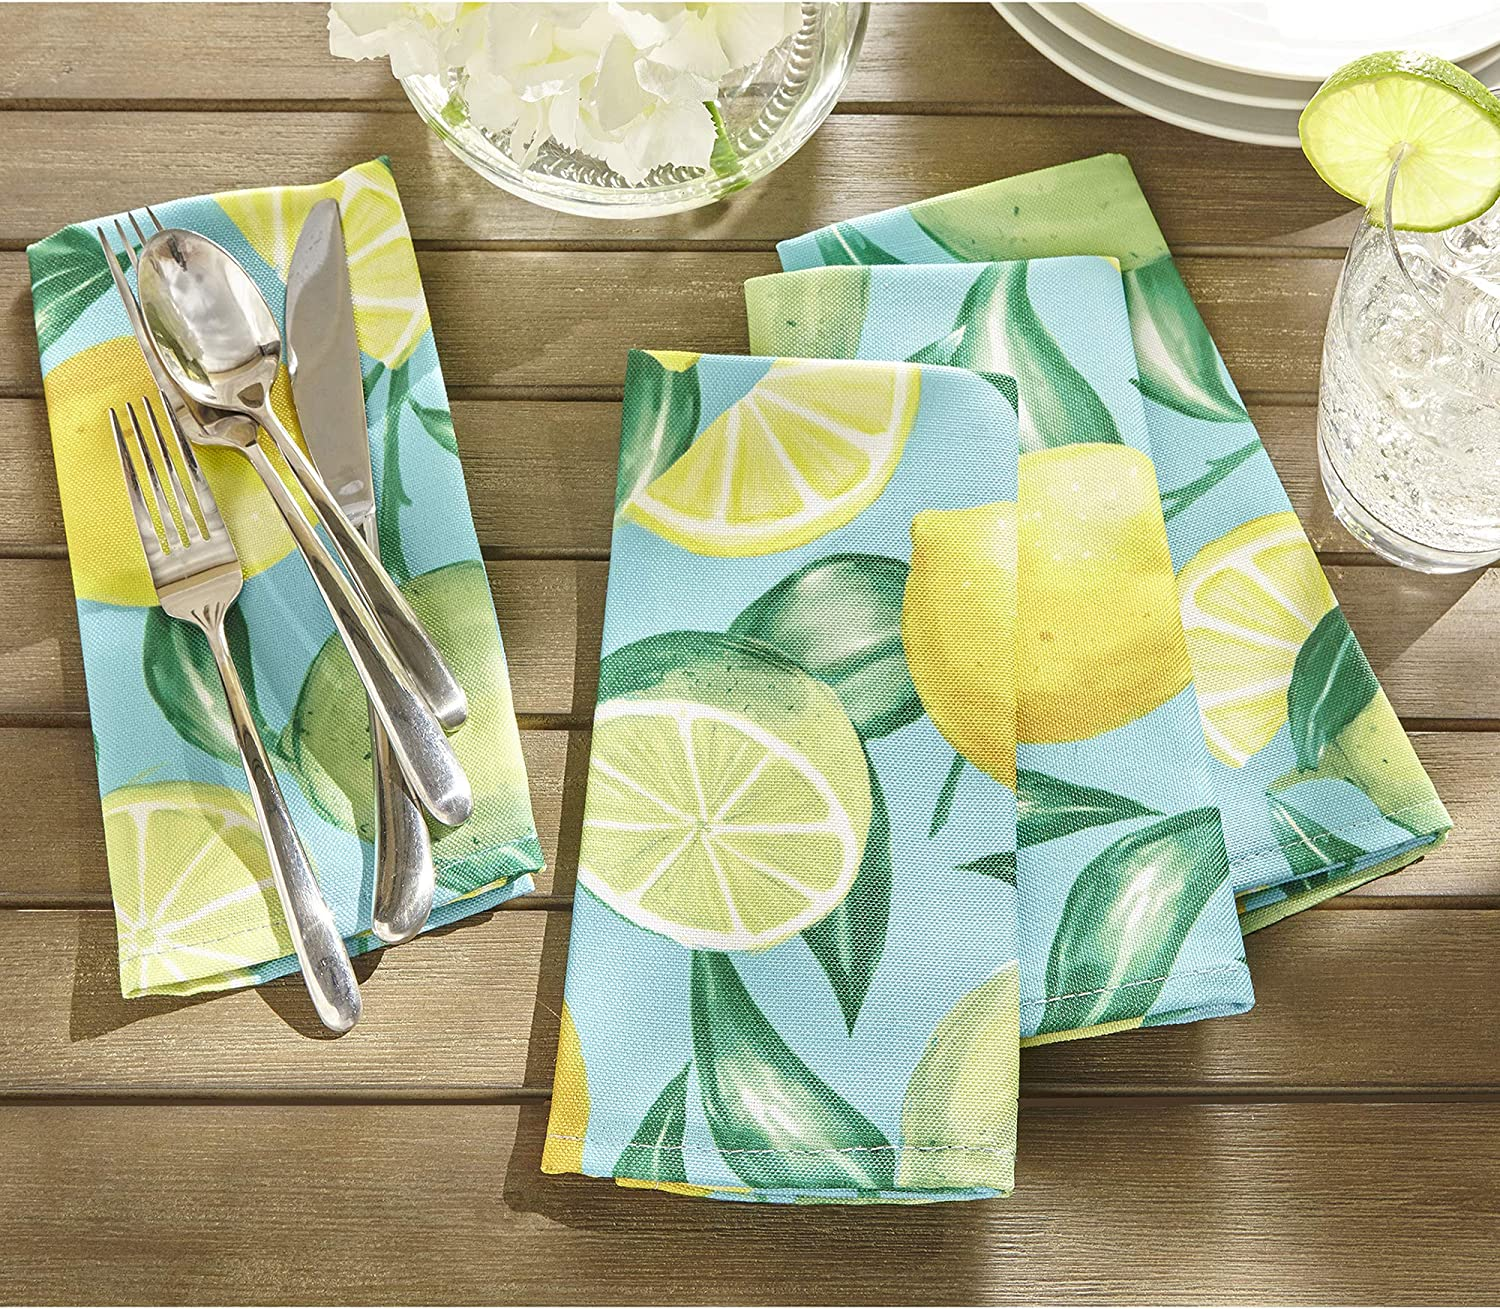 """Elrene Home Fashions Lemon Grove Stain Resistant Indoor Outdoor Spring/Summer Napkin Set of 8, 17""""x17"""", 8 Count"""